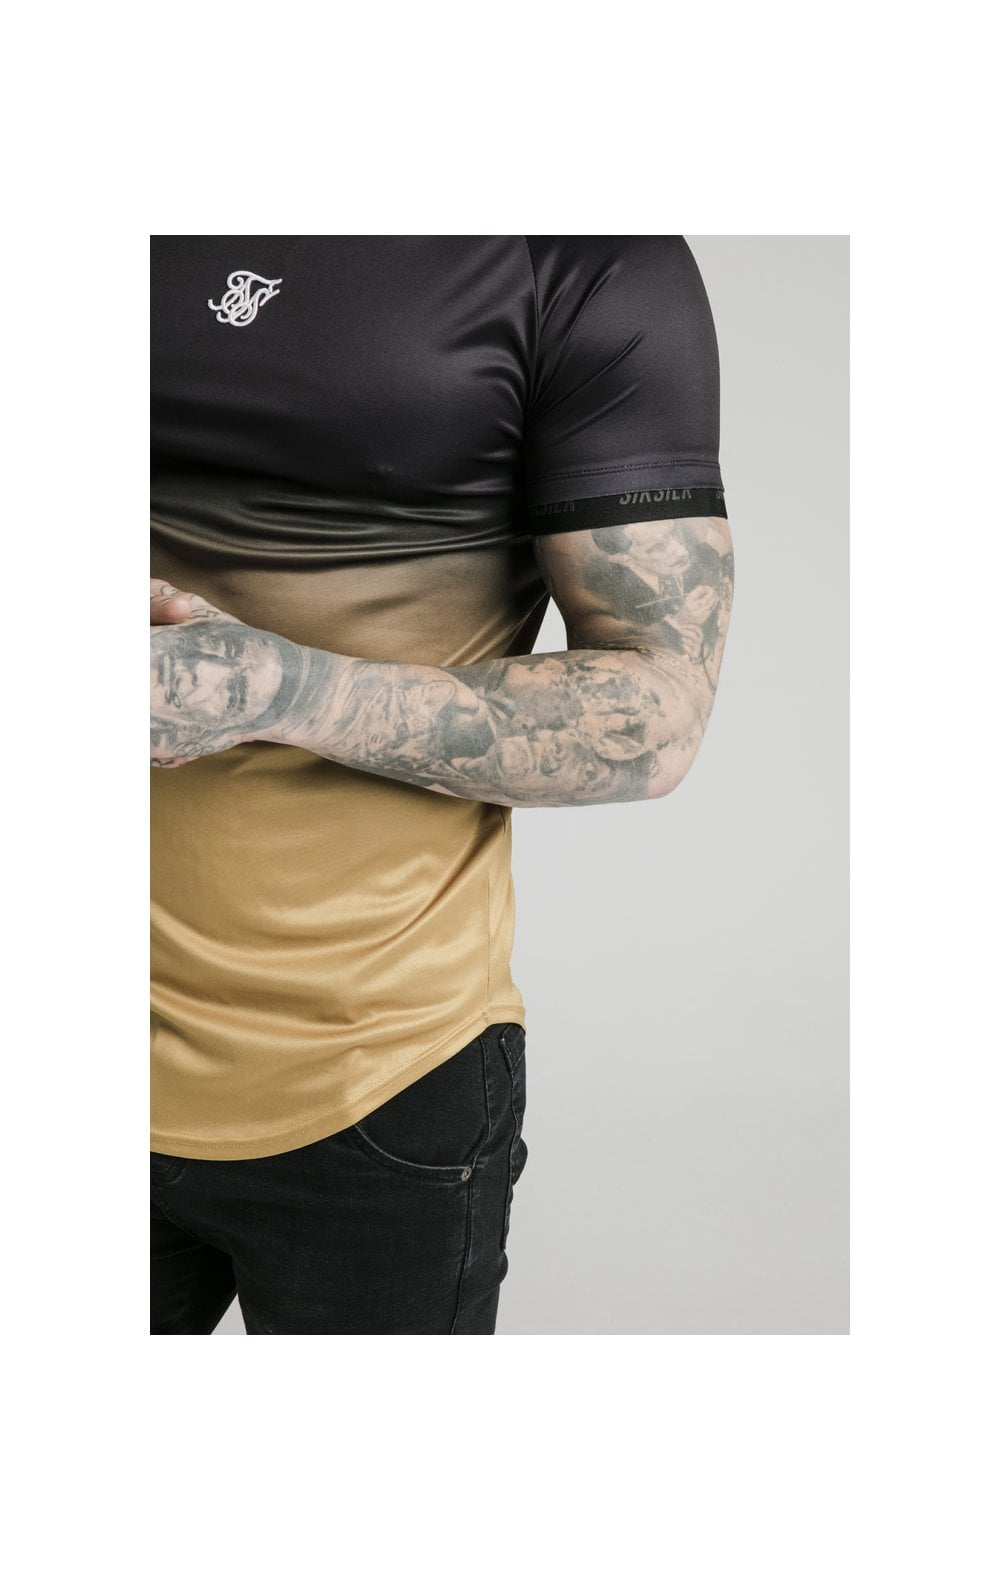 SikSilk S/S  Fade Tech Tee - Black & Gold (1)